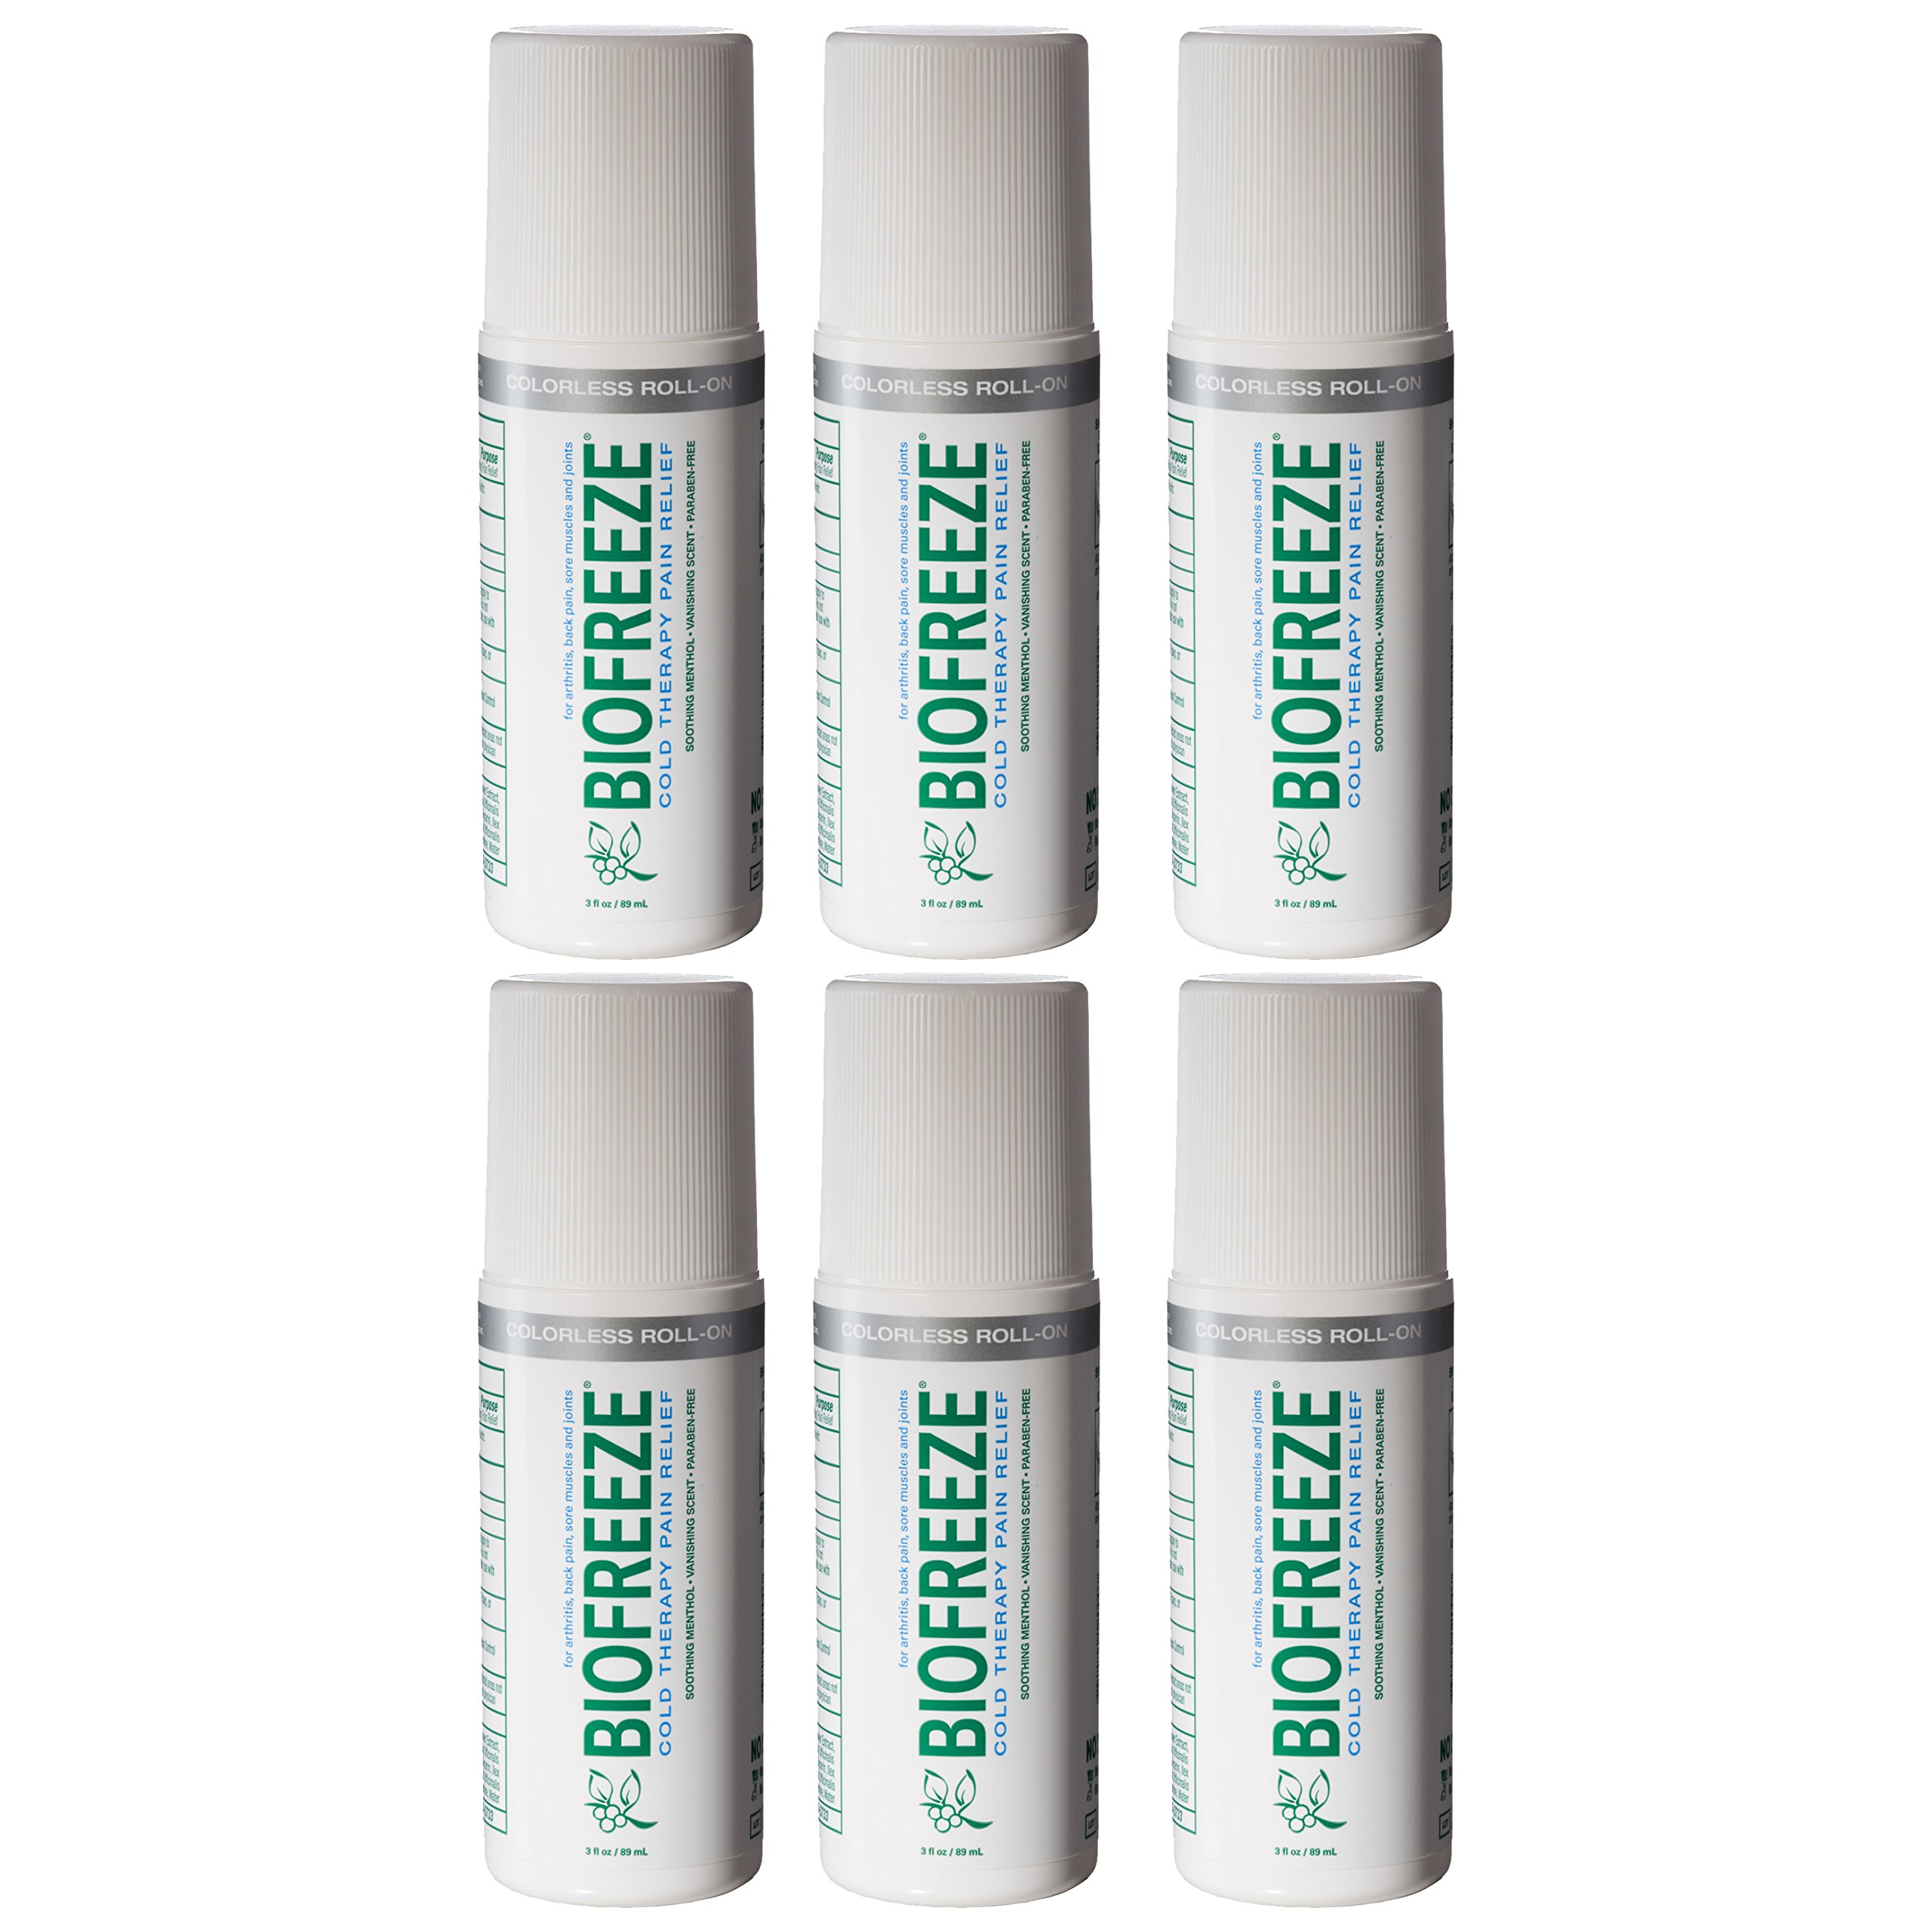 Biofreeze Pain Relieving Colorless Roll-On 3oz - Pack of 6 by BioFreeze